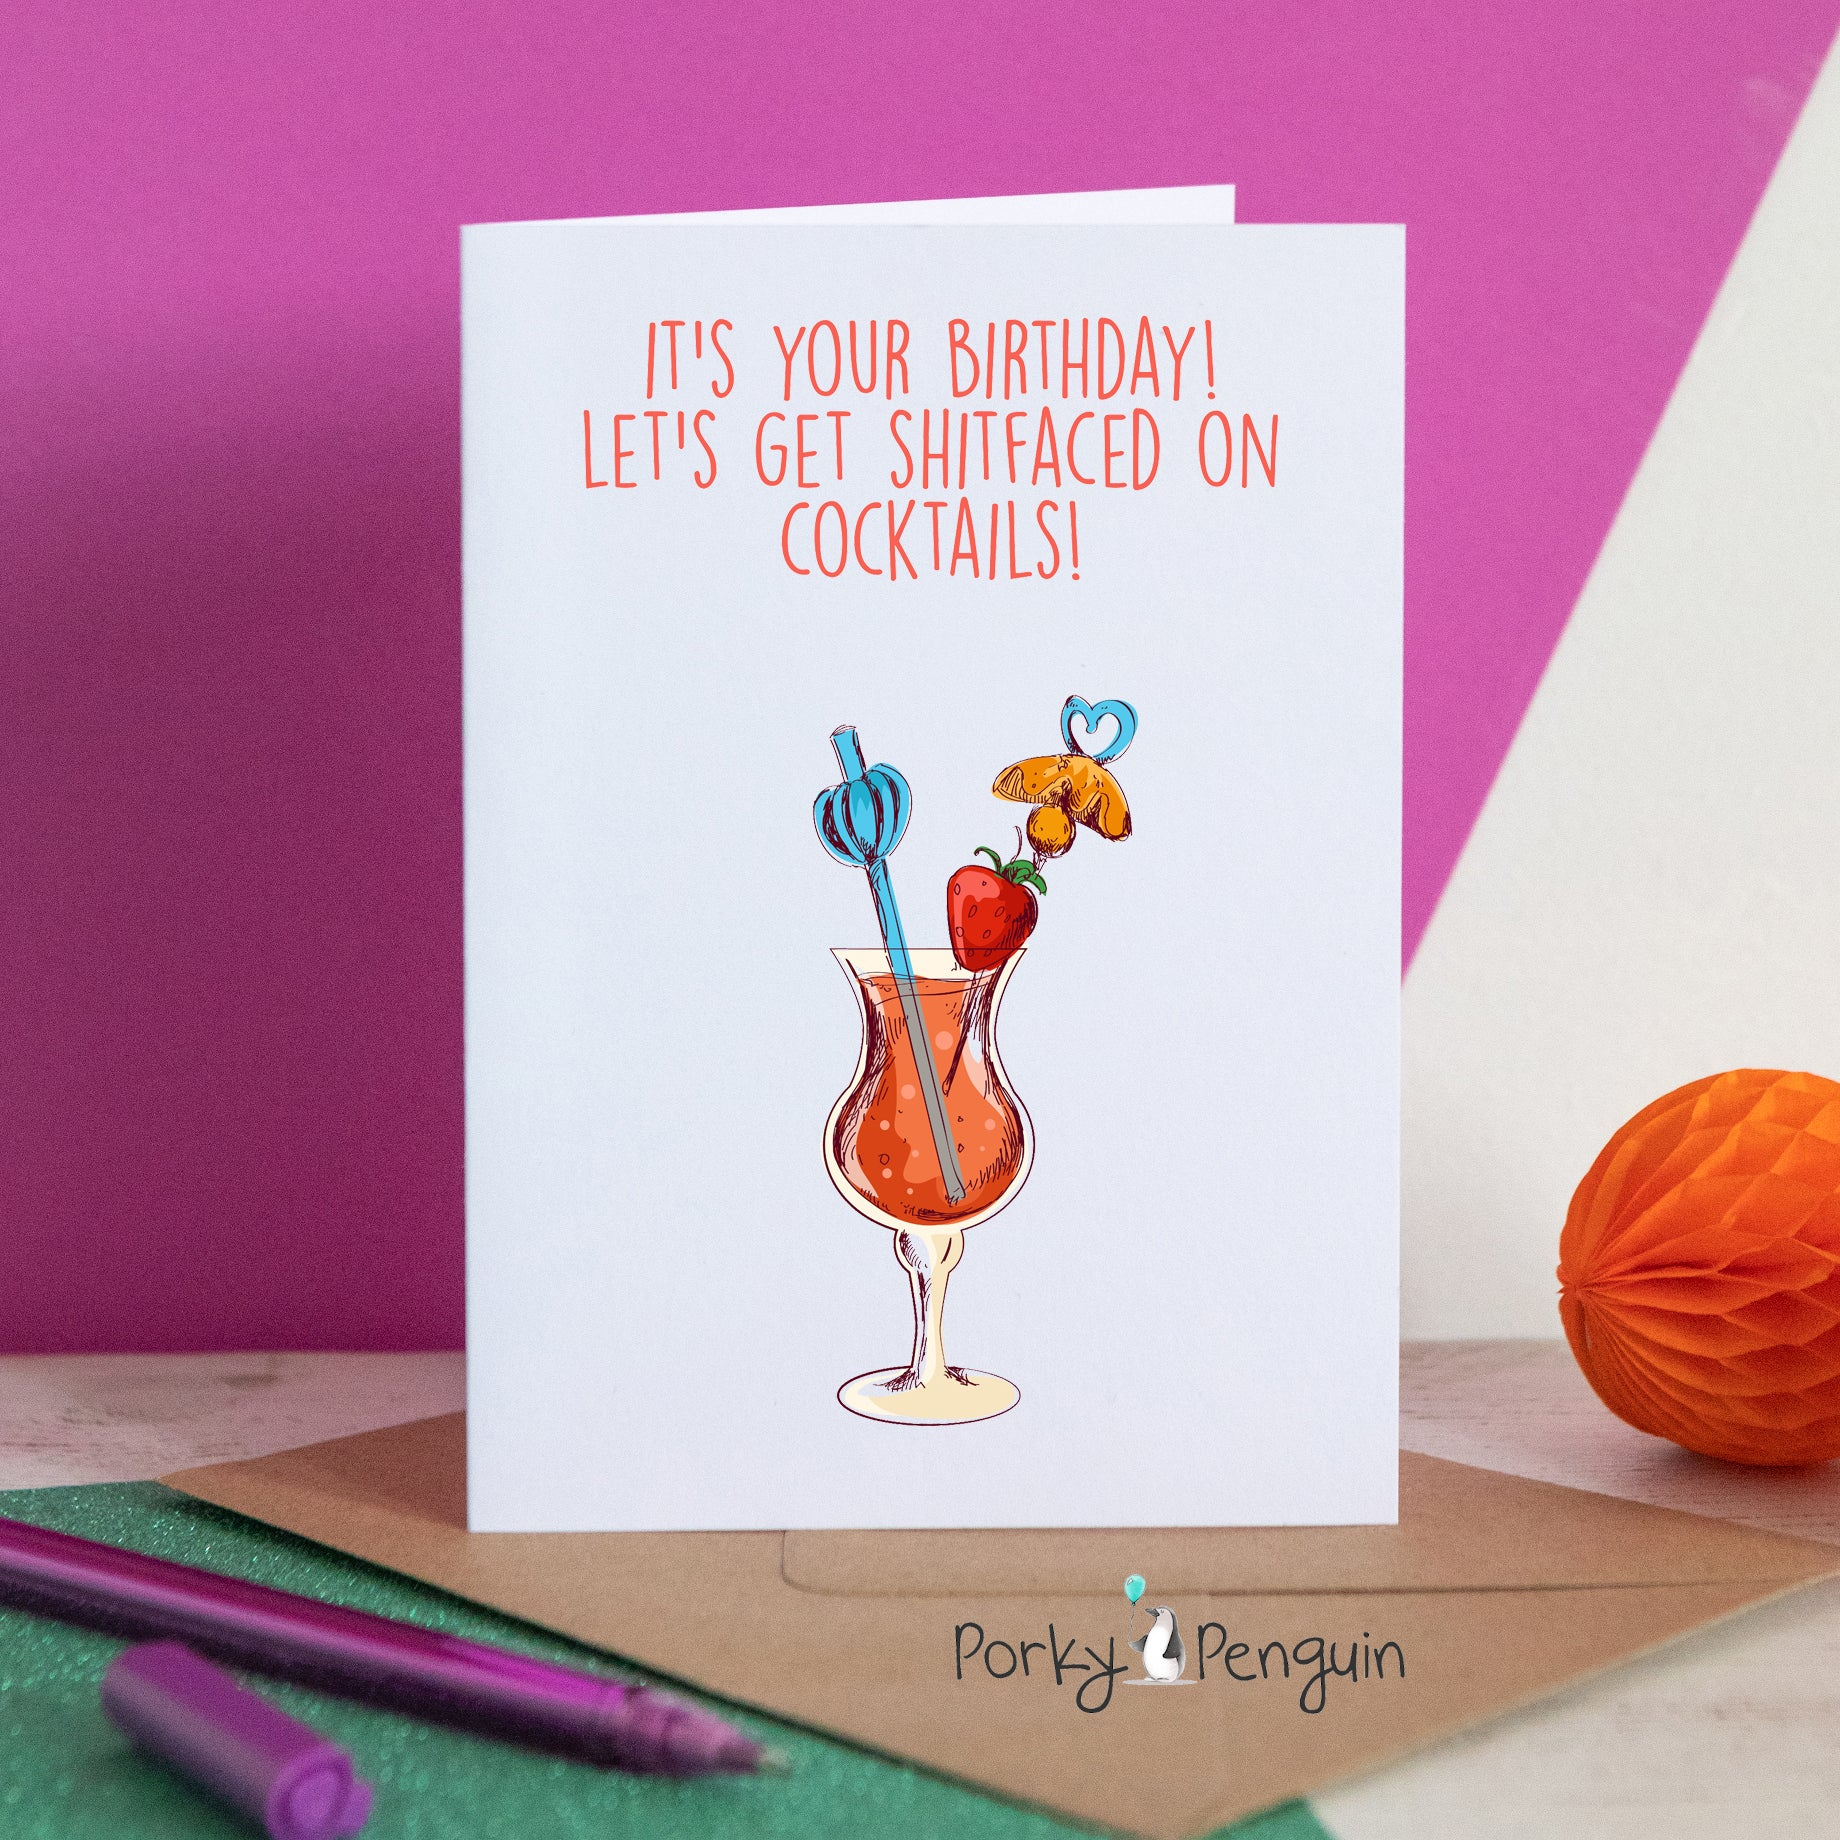 Shitfaced on Cocktails birthday card